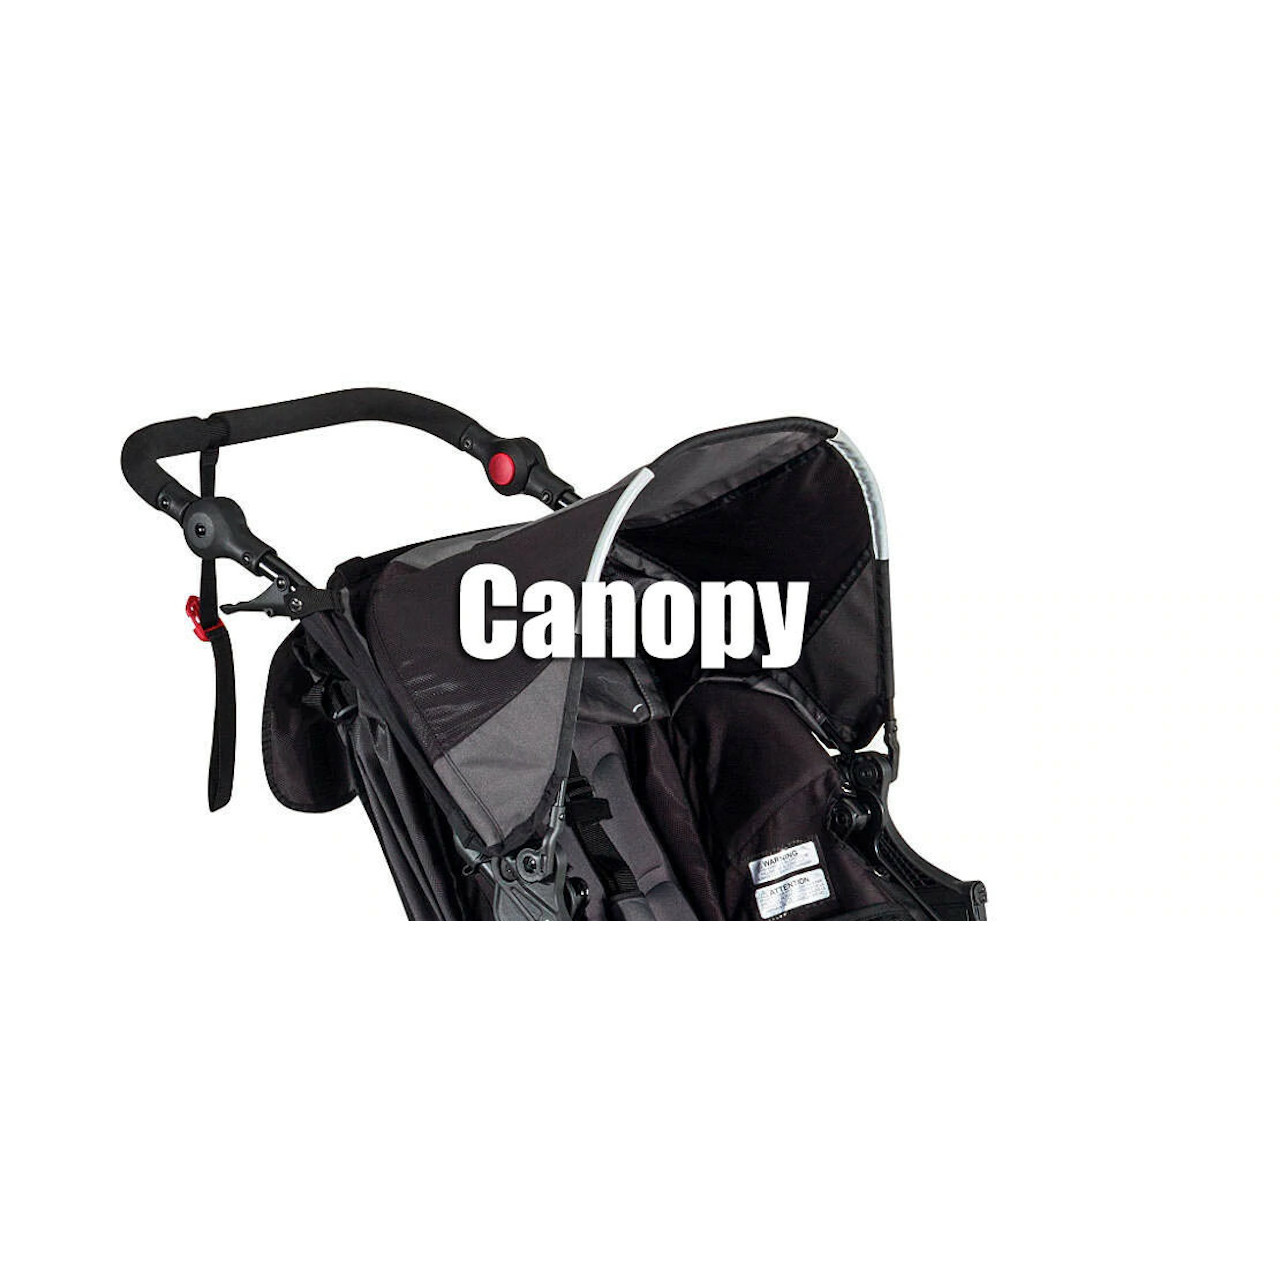 Canopy sold separately